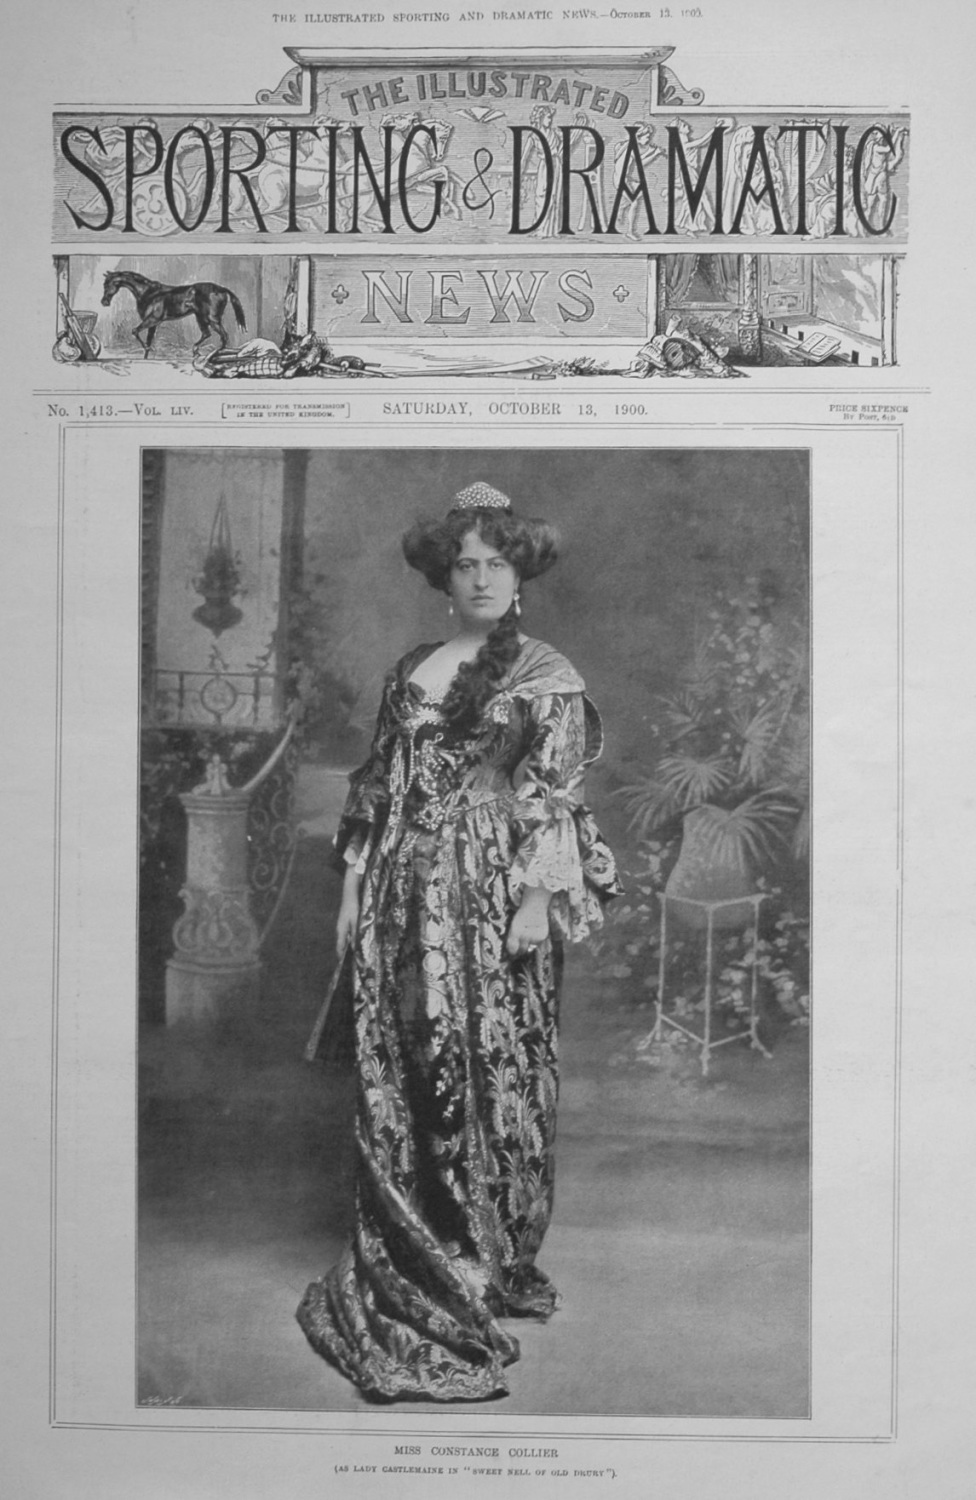 Miss Constance Collier.